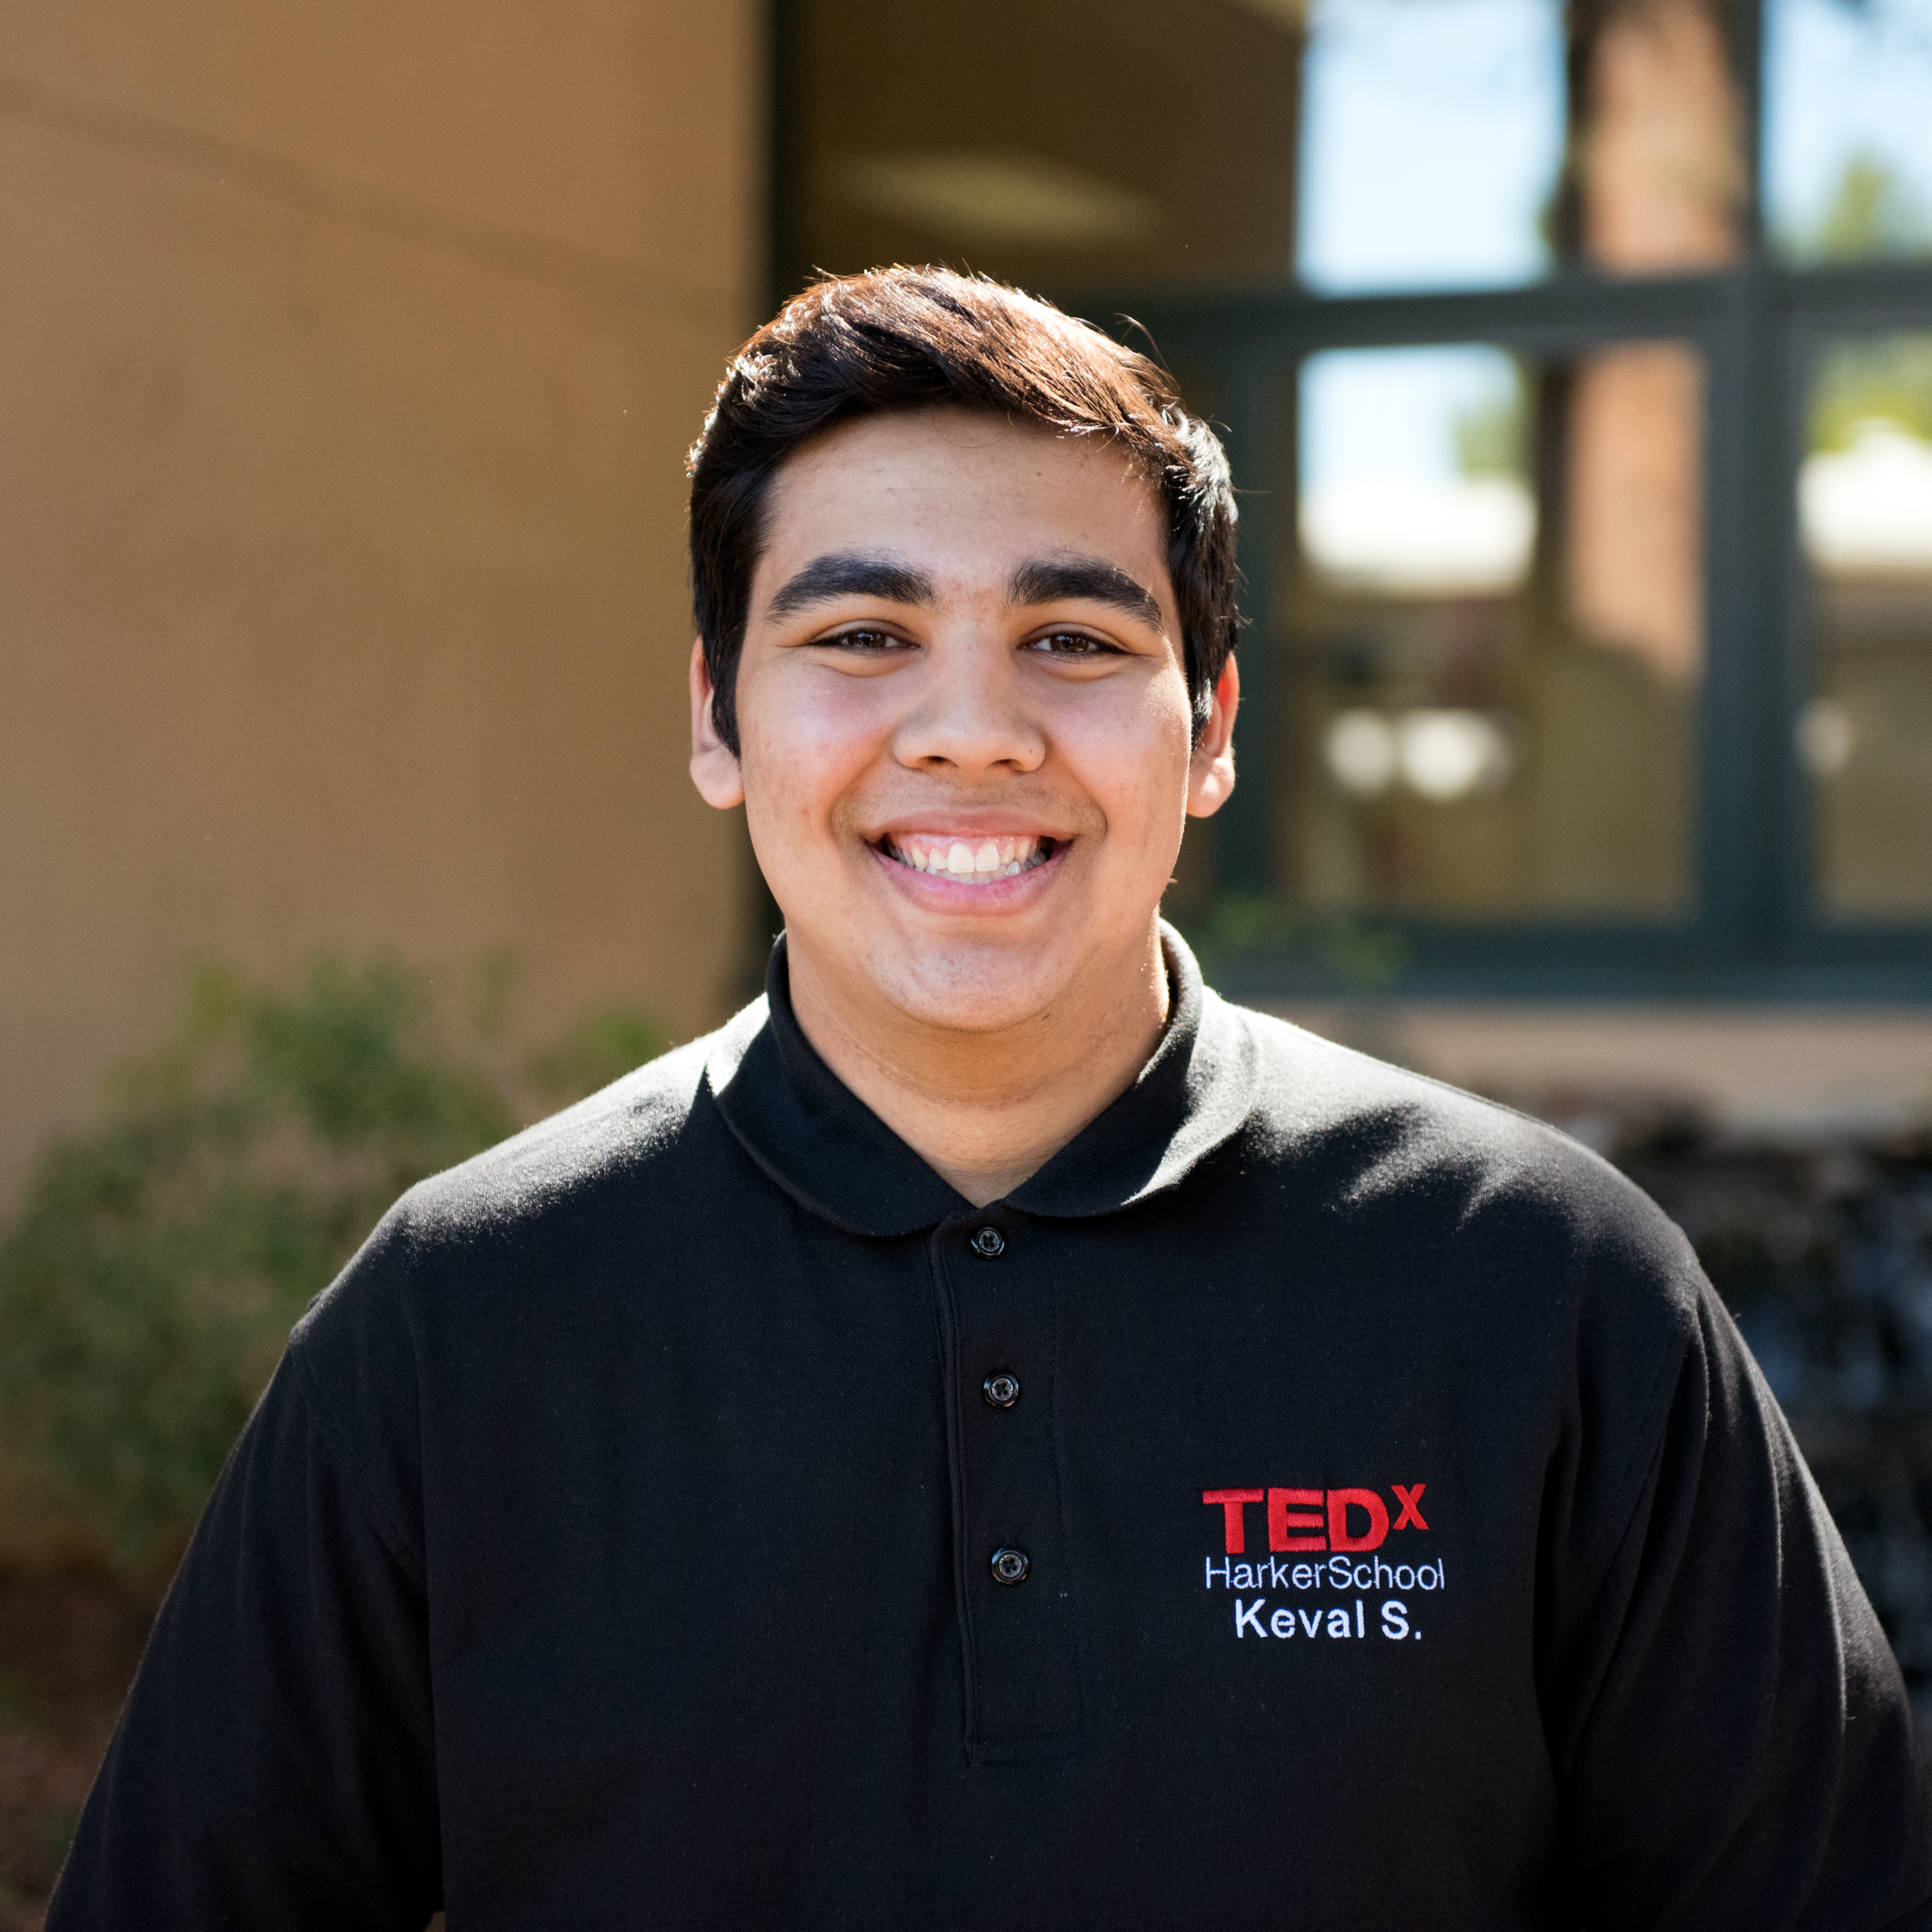 Keval Shah - Going into his junior year at The Harker School in San Jose, Keval is a vital member of the Operations Team for TEDx Harker School. Keval has also enjoyed and took part in the Synopsis and Google Science Fair. In his 3 years of competing at this fair, his projects corroborate his interest in the medical as well as engineering field. Besides TEDx, tennis and surfing are two activities which Keval takes pleasure in. Both help him relieve stress from school and relax. However, if he does not have enough time to go to the courts or the water, he likes to play his guitar. For him, listening to each one of the six strings resonate helps him regain his strength.